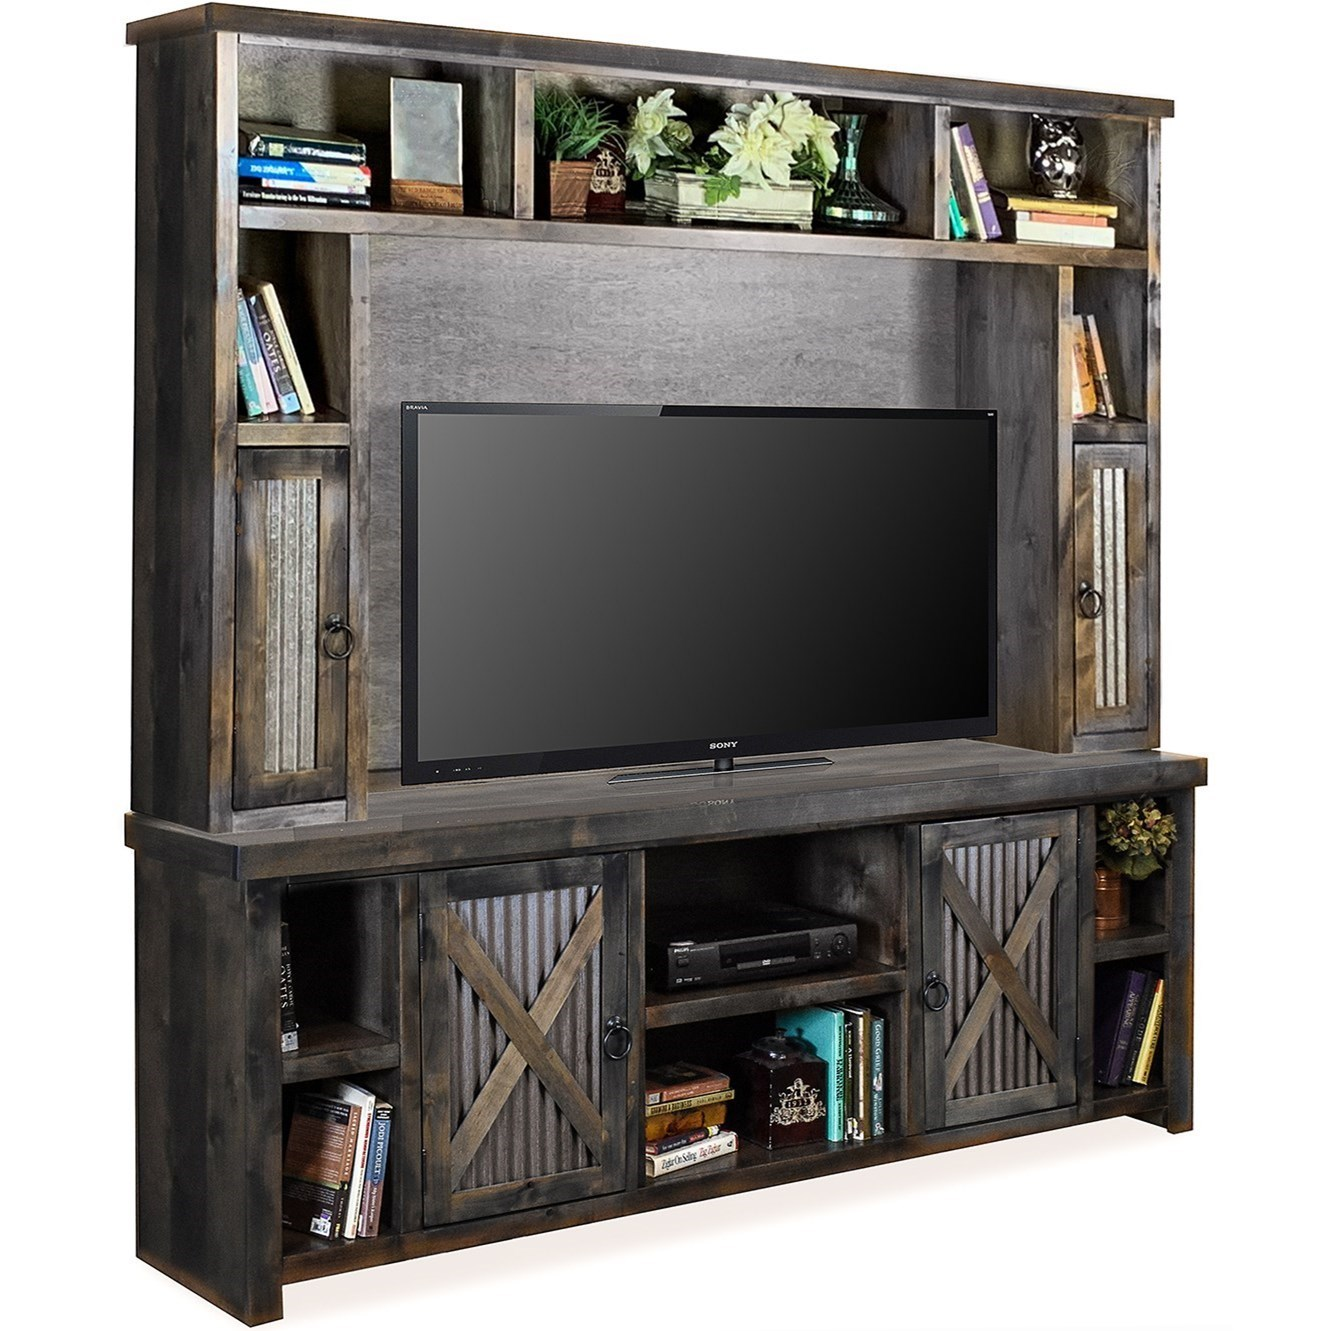 Legends Furniture Jackson Hole Rustic Entertainment Center With Metal Door Accents Wayside Furniture Wall Unit